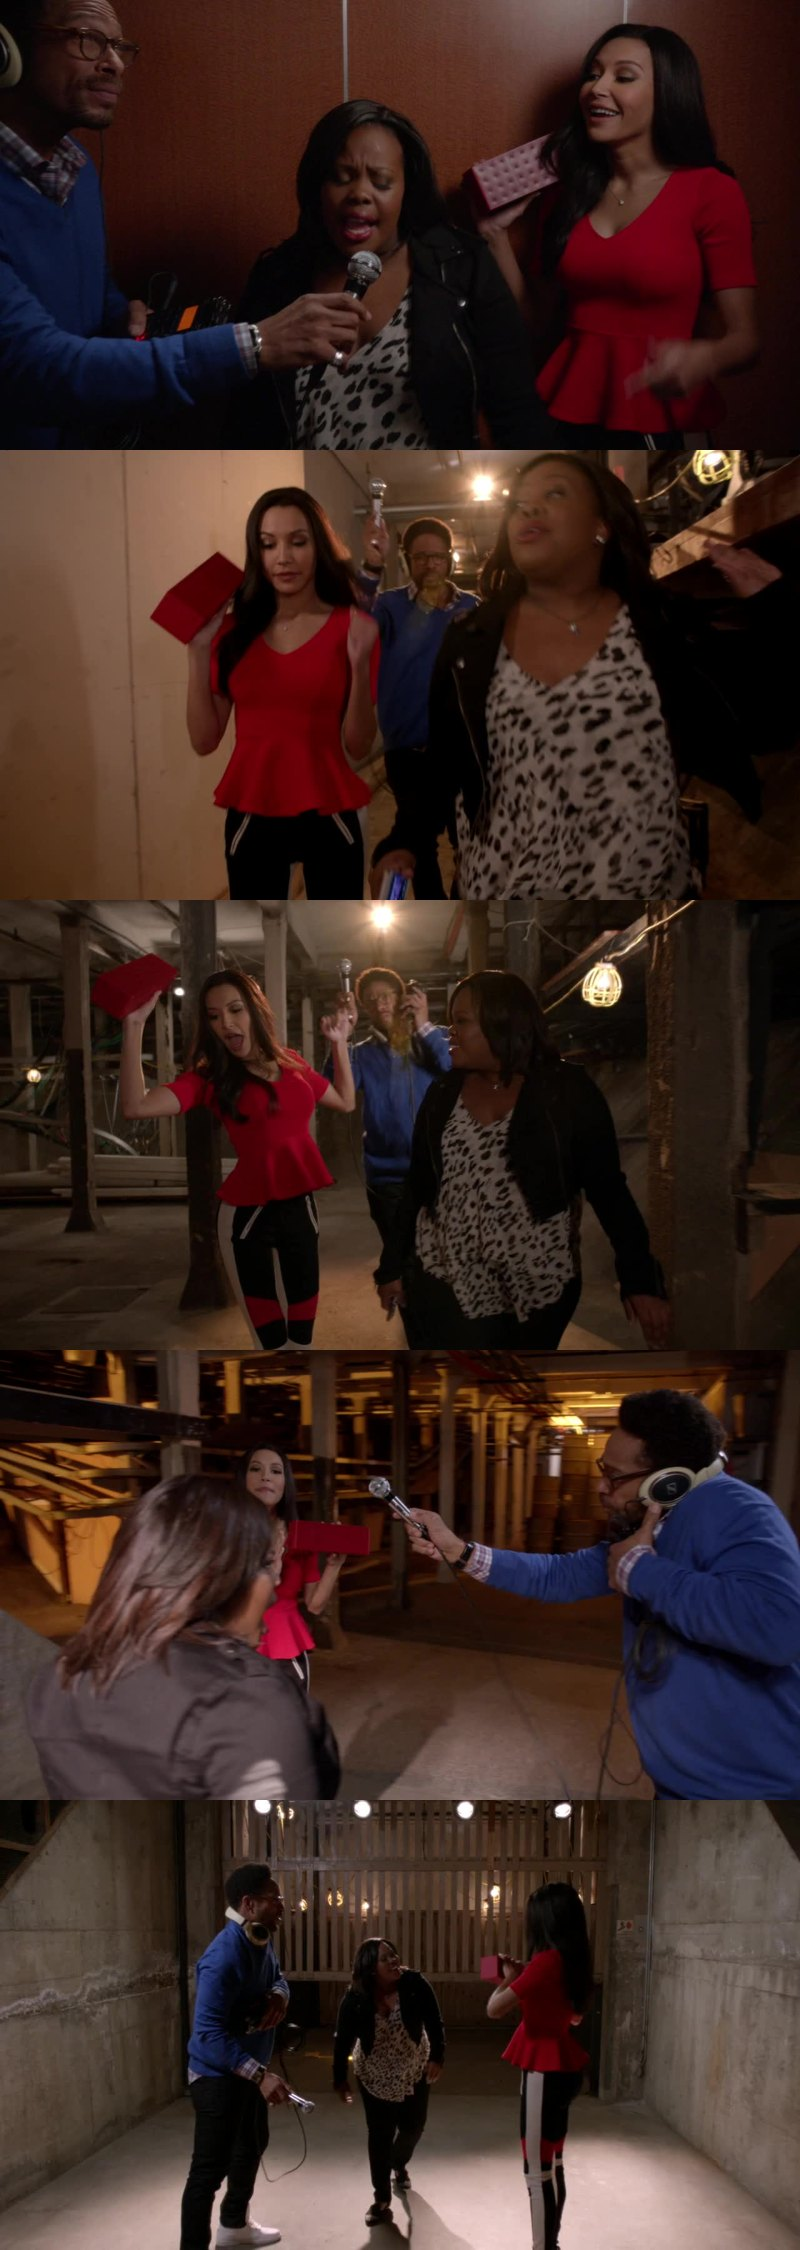 The best moment of this episode :